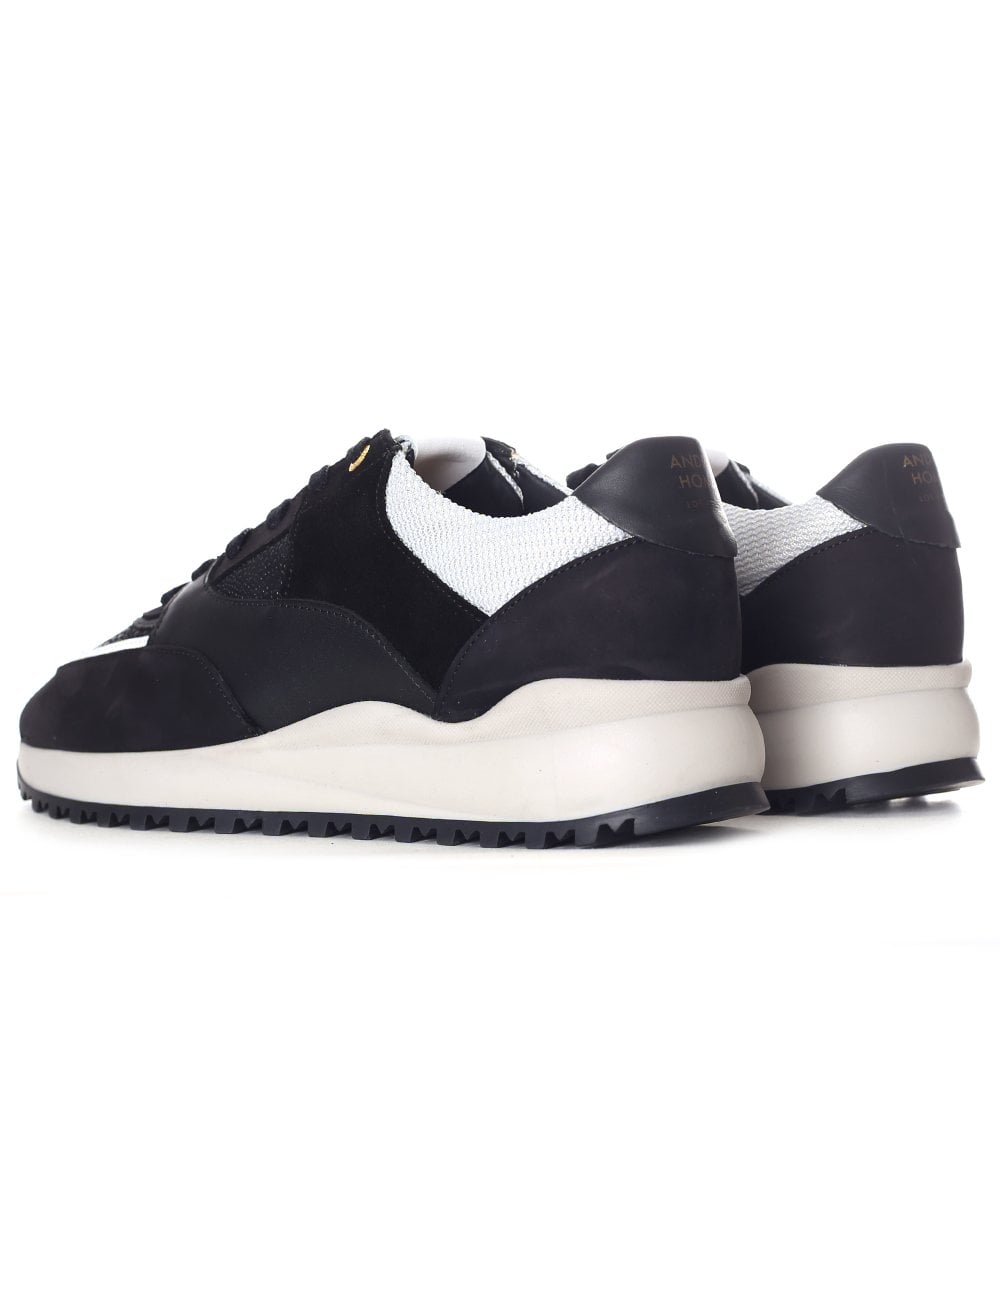 d1a5f862e66 Android Homme Men s Belter 3.0 Suede Trainer